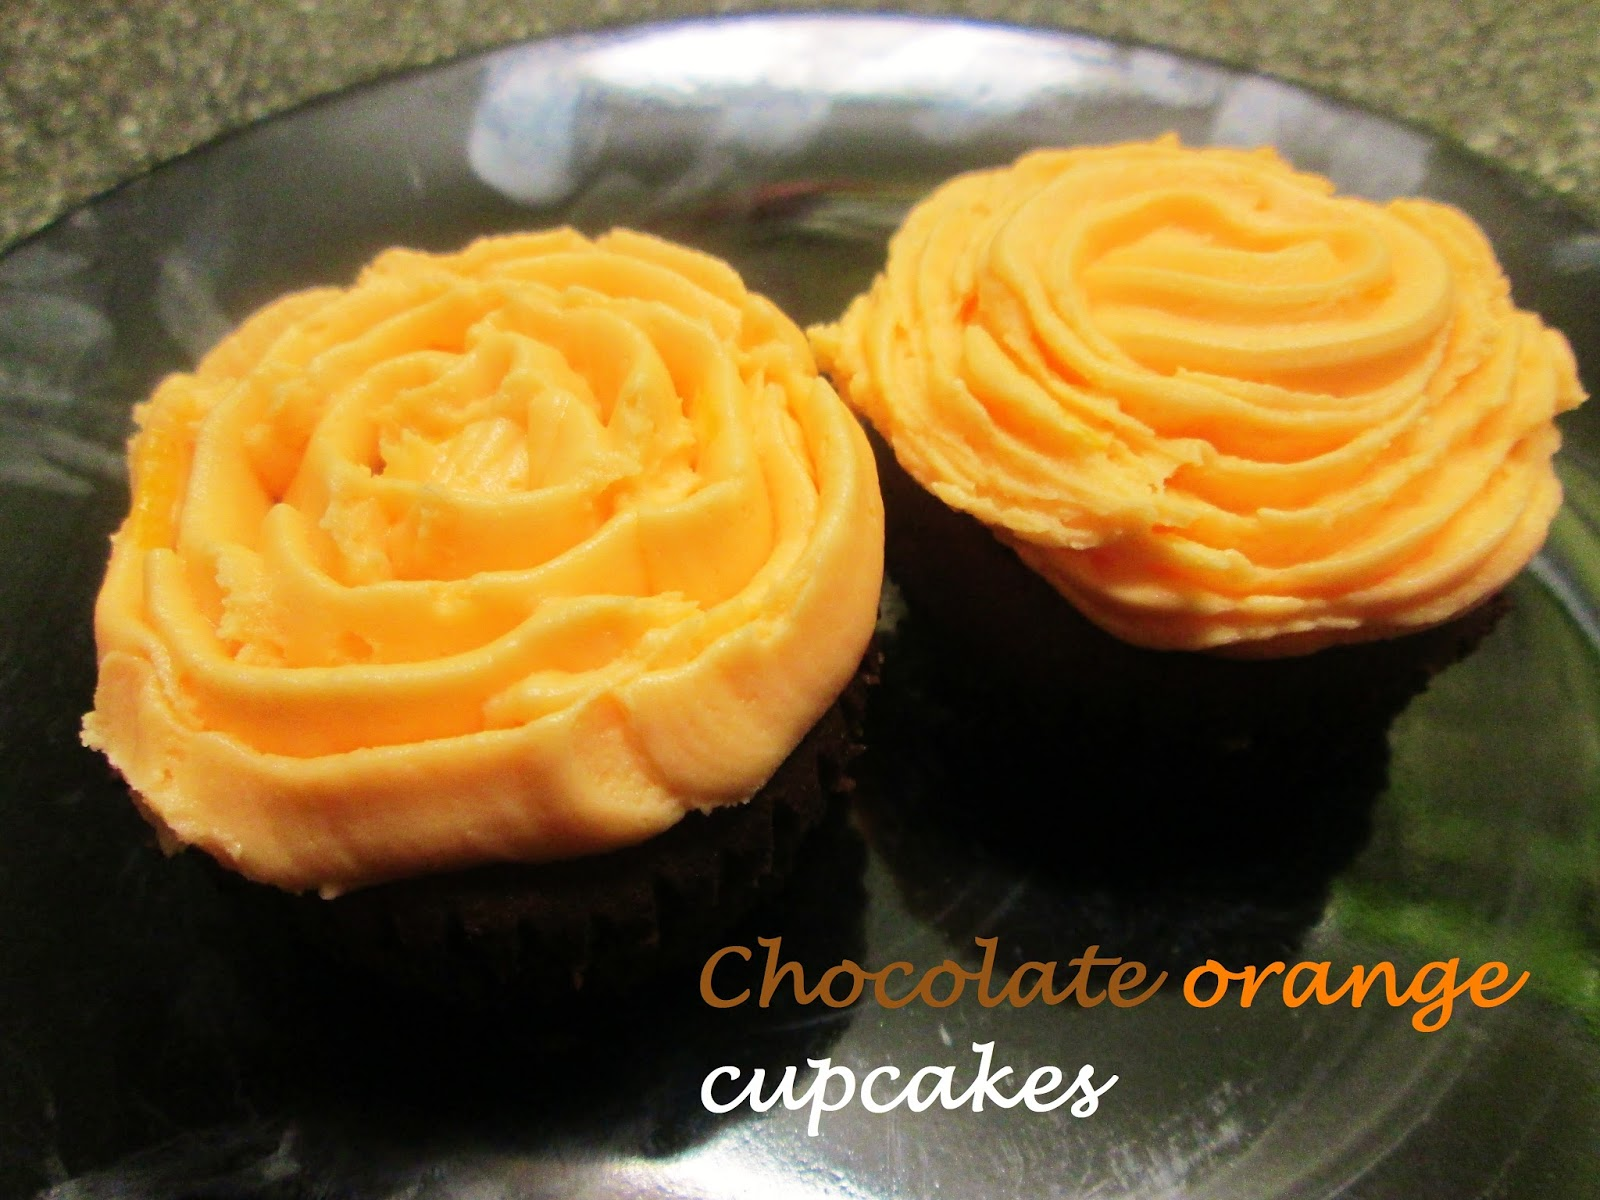 THE MESSY KITCHEN: CHOCOLATE ORANGE CUPCAKES